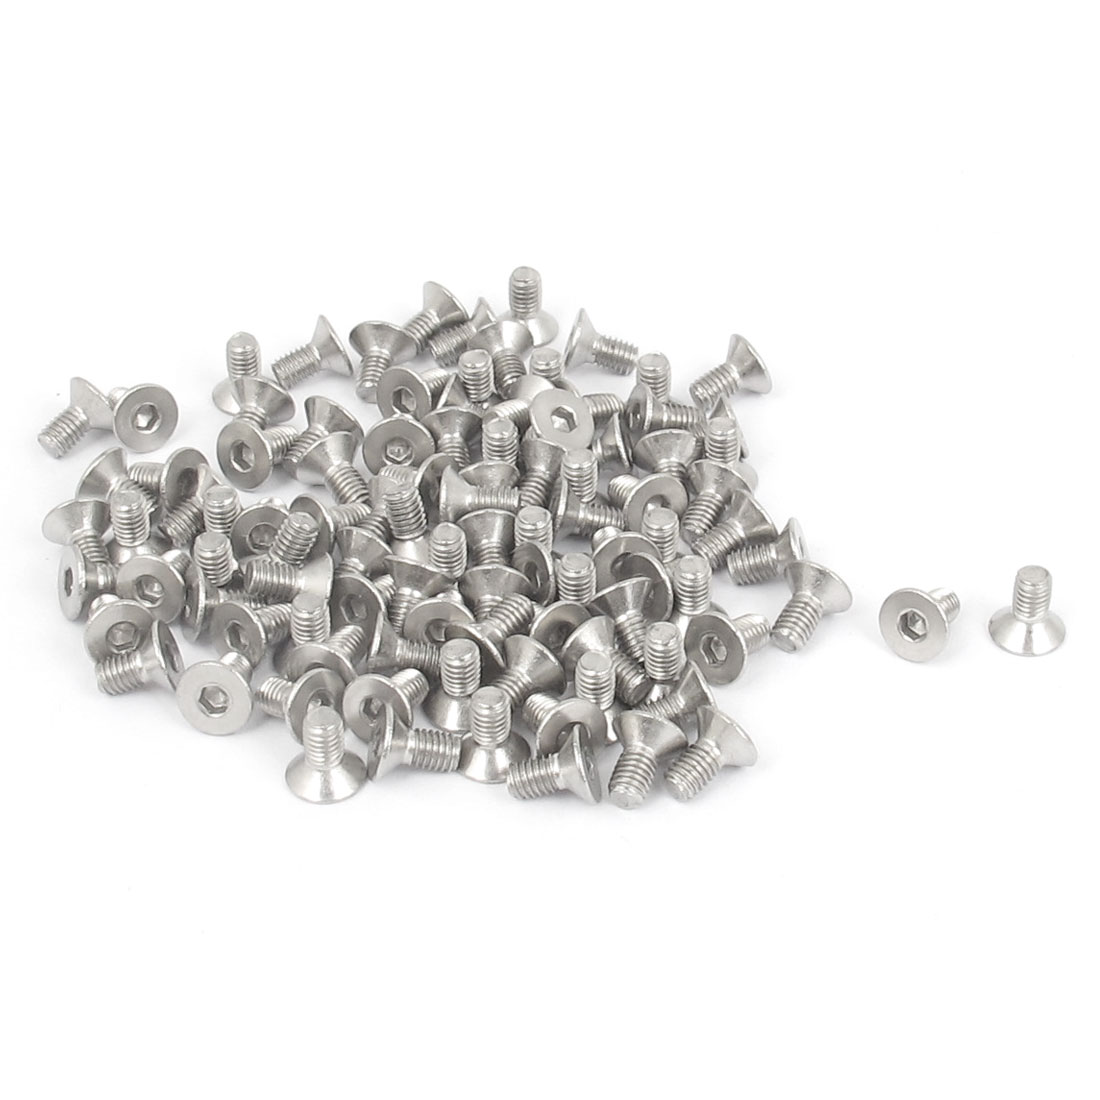 M3 x 6mm Metric 304 Stainless Steel Hex Socket Countersunk Flat Head Screw Bolts 100PCS